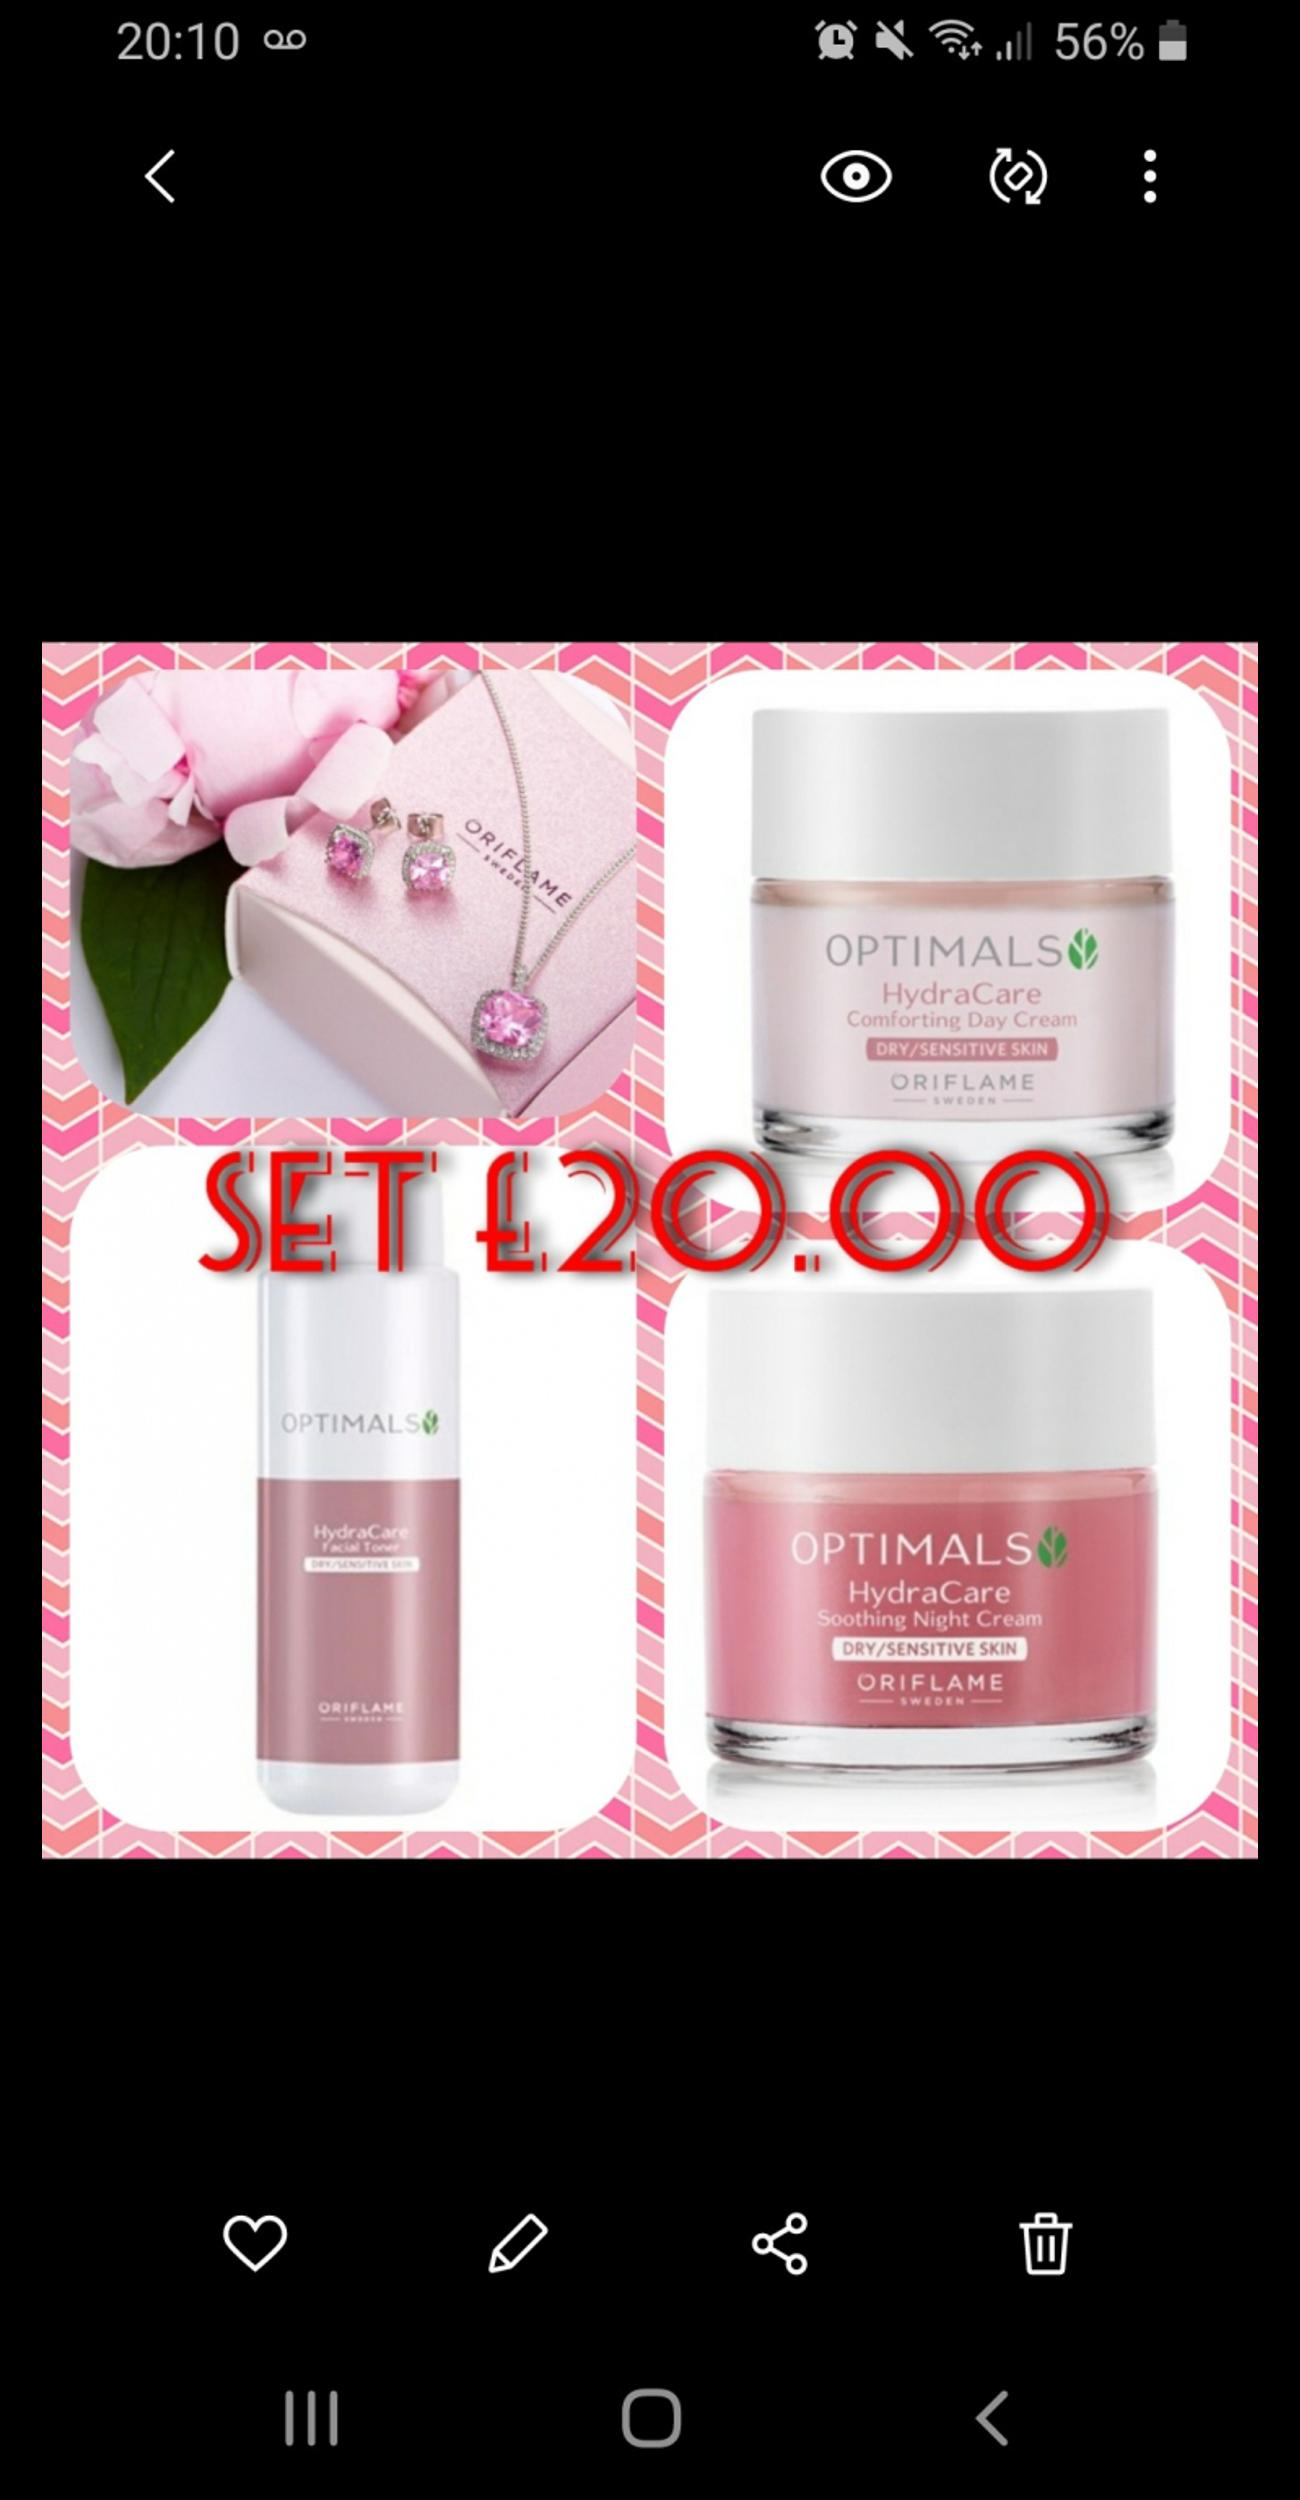 Perfect for mothers day all 4 items for £20!F Gentle alcohol-free toning lotion for dry or sensitive skinRemoves traces of make-up and impurities Gorgeous necklace and earring set Boxed A deeply hydrating day cream that leaves dry and sensitive skin refreshed, supple and calmed. With Swedish natural ingredient blend of Heather and Sweet Chestnut, with Vitamin B3 and Anti-pollution Active.An intensely hydrating night cream that leaves dry and sensitive skin feeling soft, nourished and calmed.